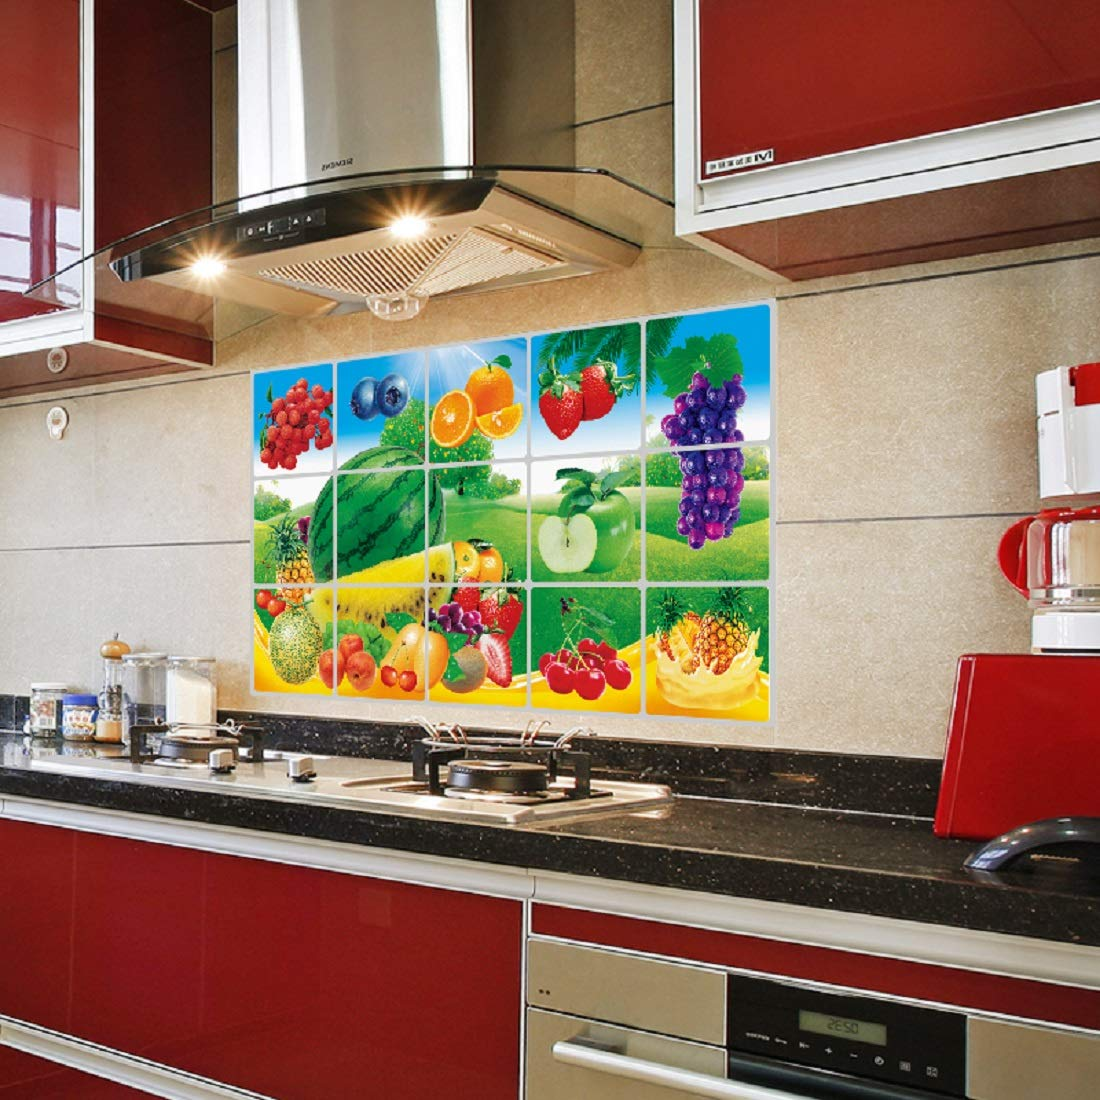 Buy Jaamso Royals Fruits And Vegetable Kitchen Protection Anti Mark Oil Proof Easy Clean Plastic Wall Stickers Mosaic Tiles Design Home Decor Aluminium Foil Heat Resistant Oil Proof Art Online At Low Prices In